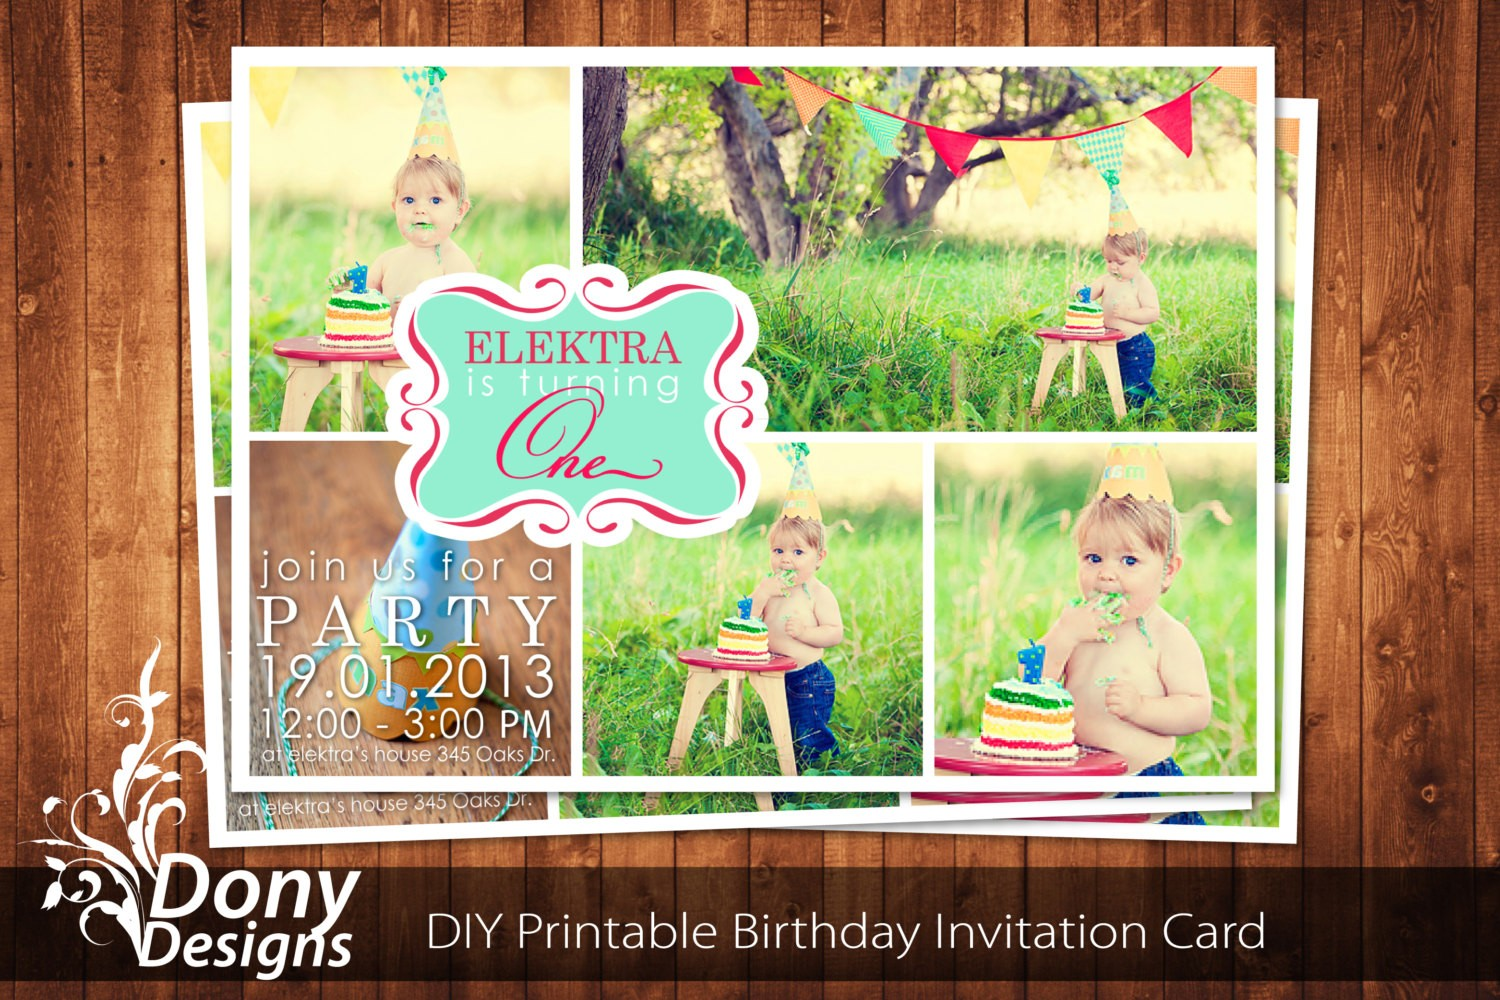 photoshop birthday invitation templates free download ; 2b5f4ab289576ba27fe61f0f26204d3a